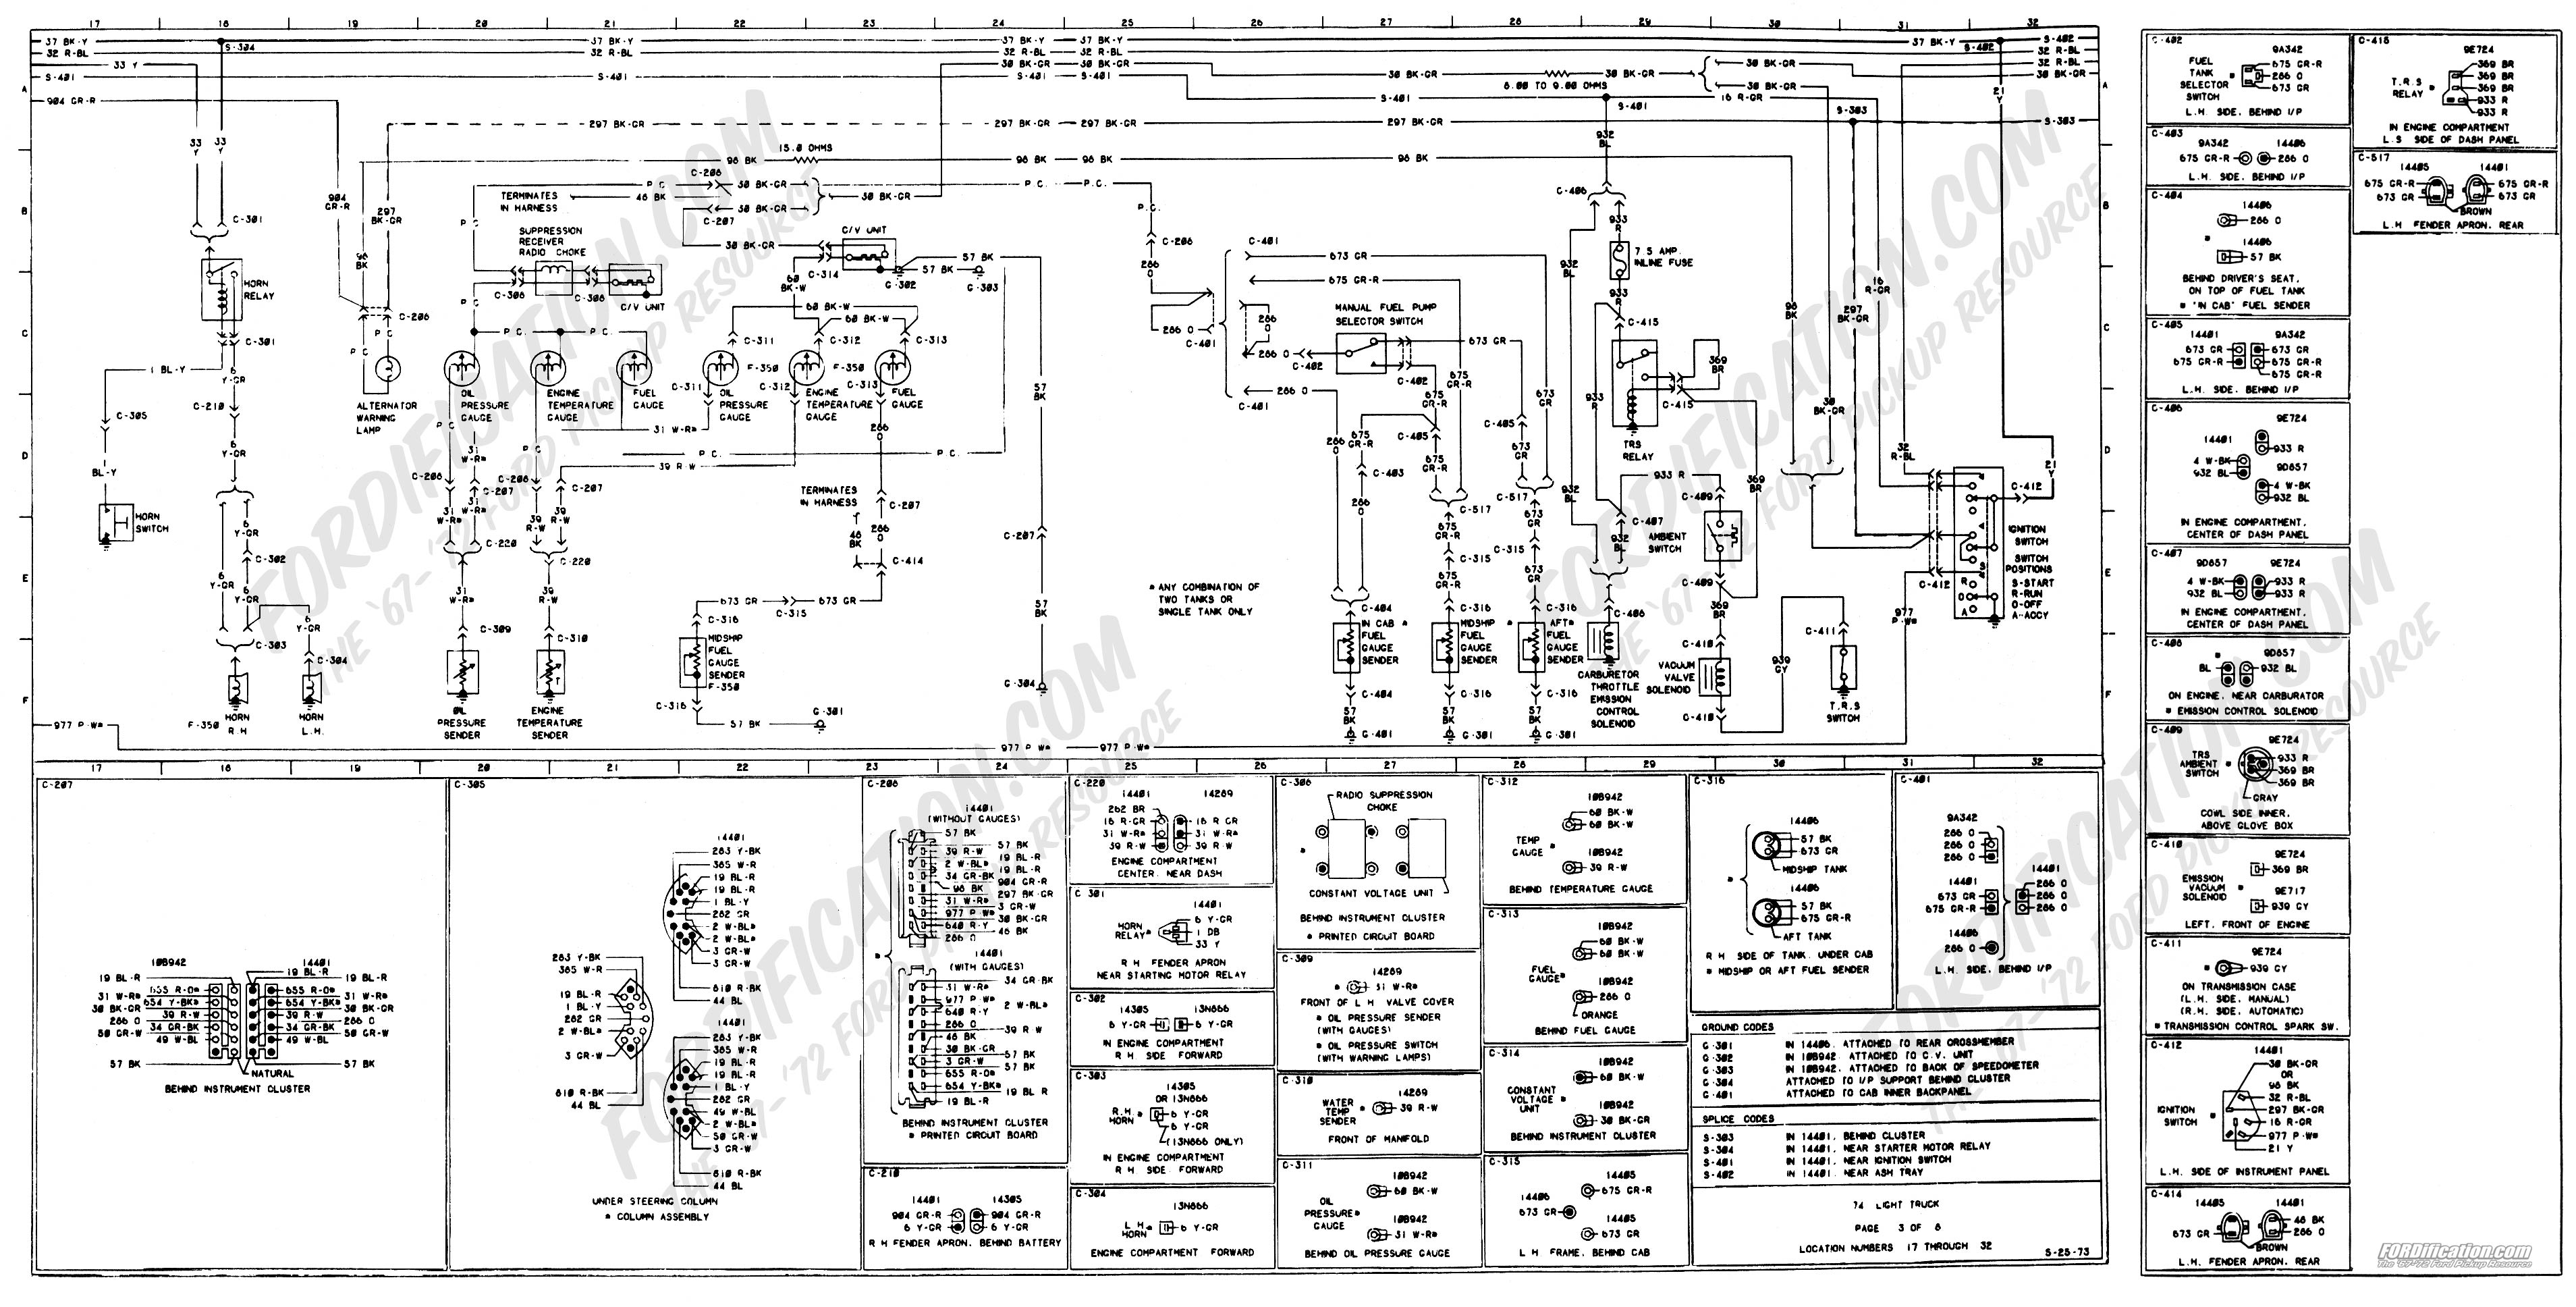 wiring_74master_3of8 1973 ford f250 fuel sender wiring diagram free download wiring